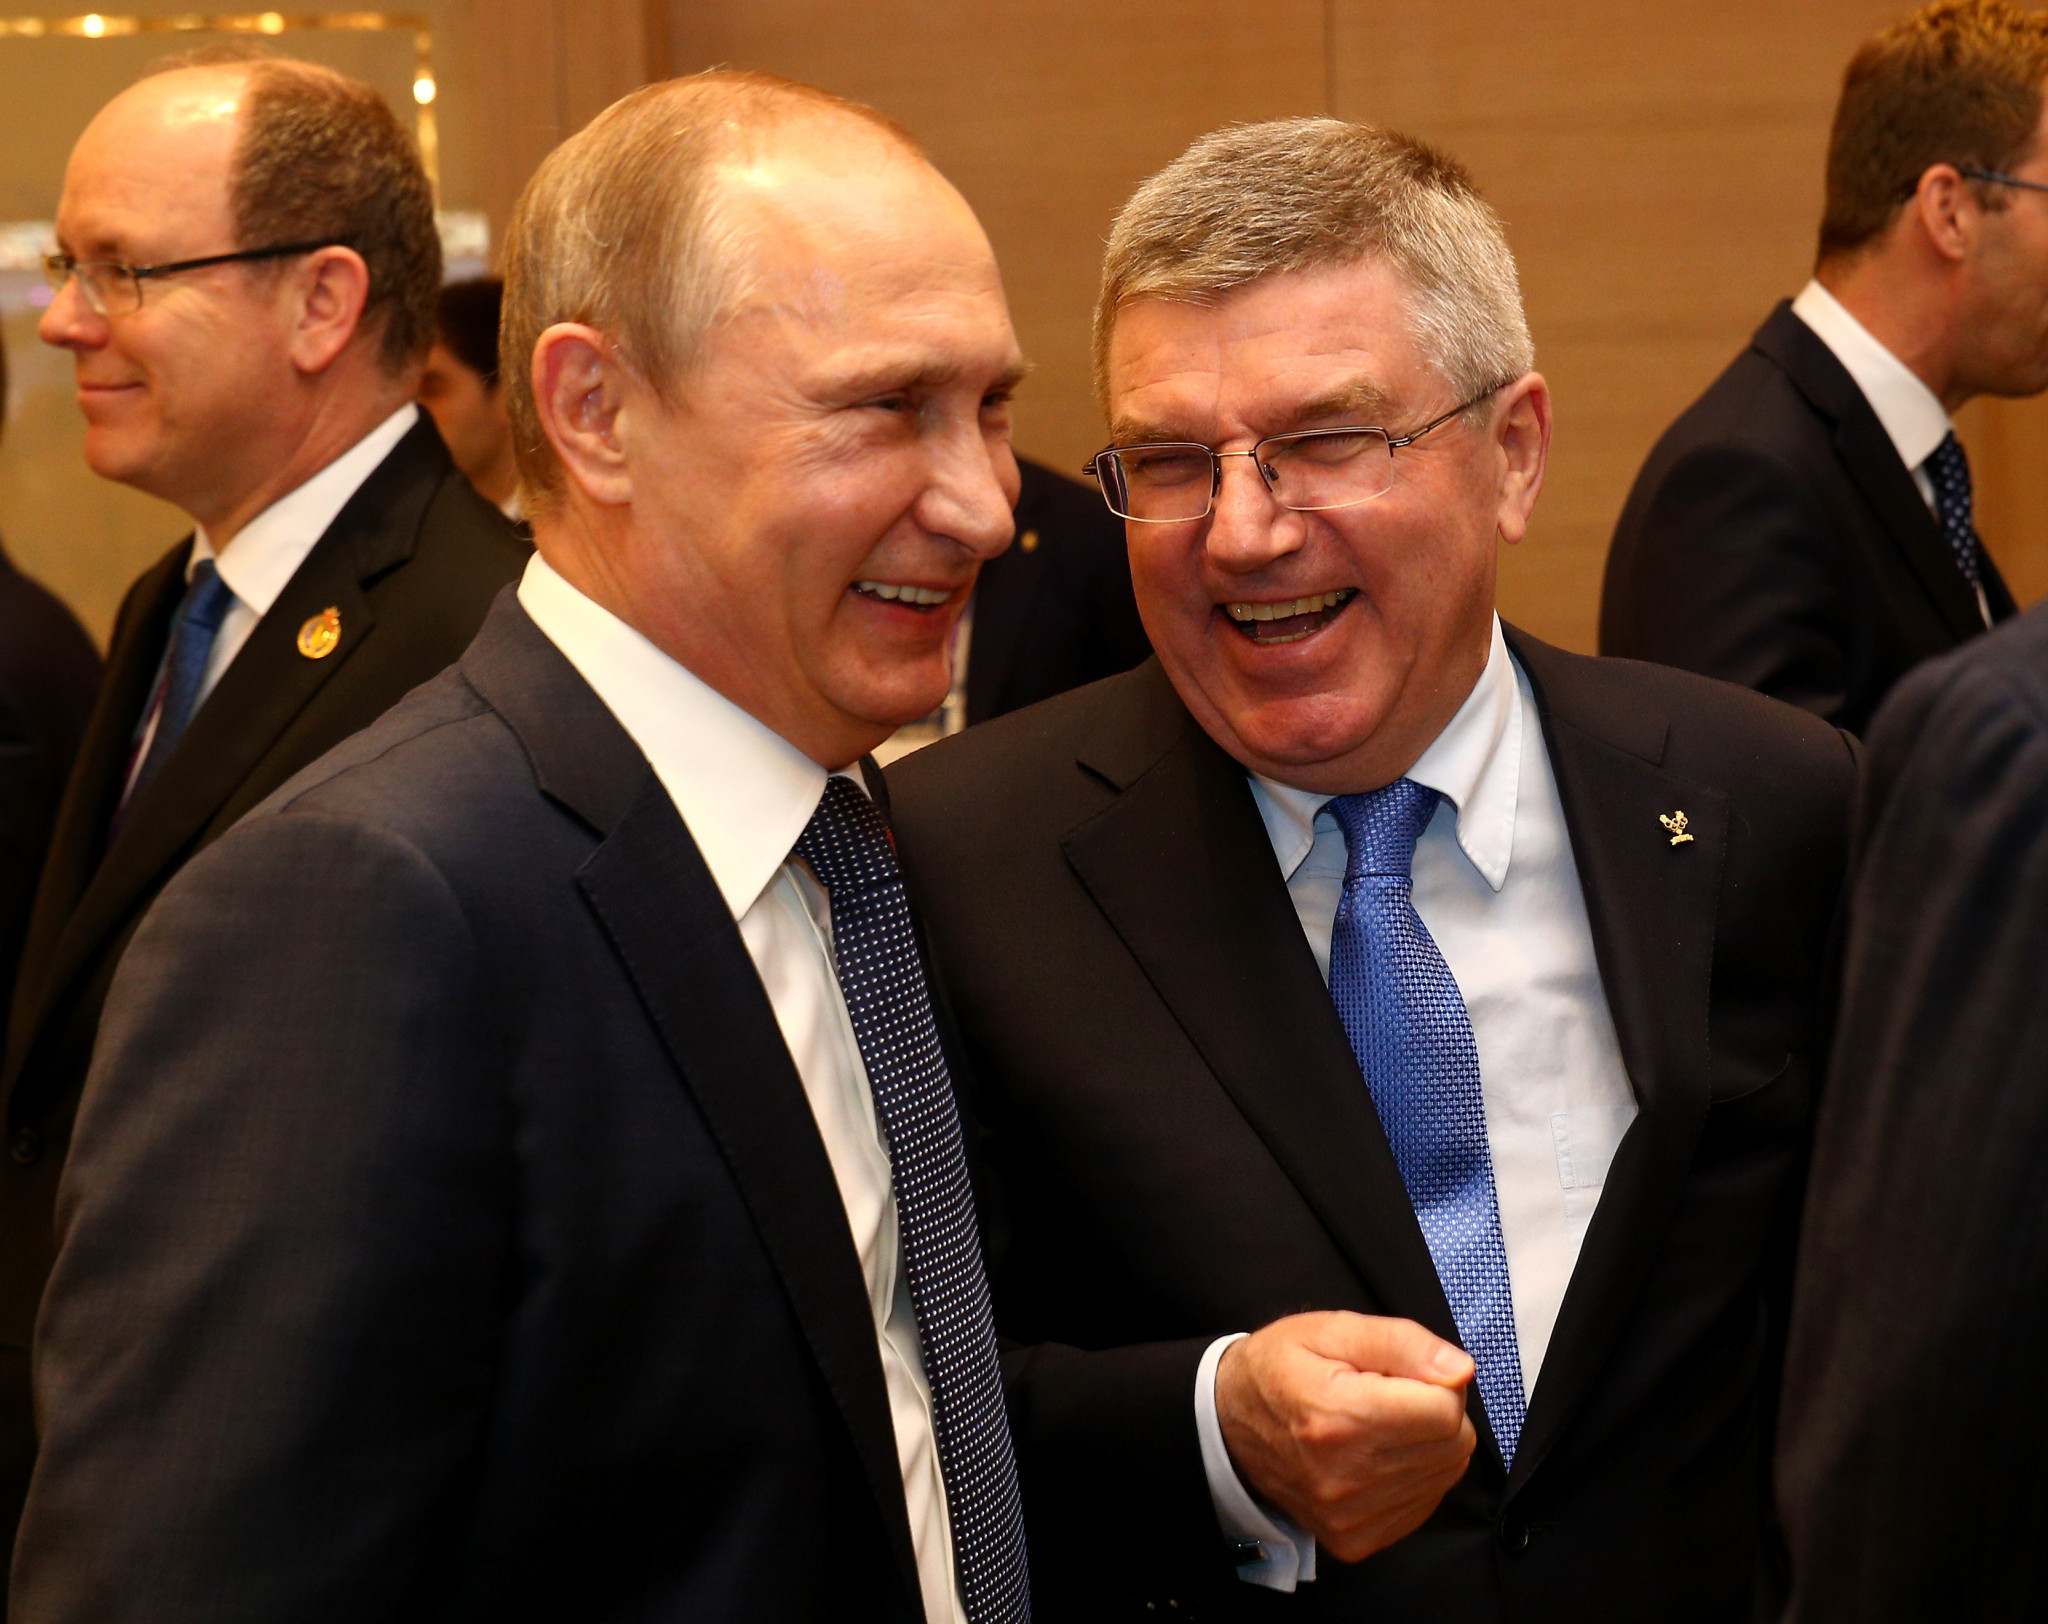 Russian President Vladimir Putin, pictured with Thomas Bach at Sochi 2014, is not found to be either involved or responsible for the doping crisis, although the Sports Ministry were blamed for it by the Schmid Commission ©Getty Images